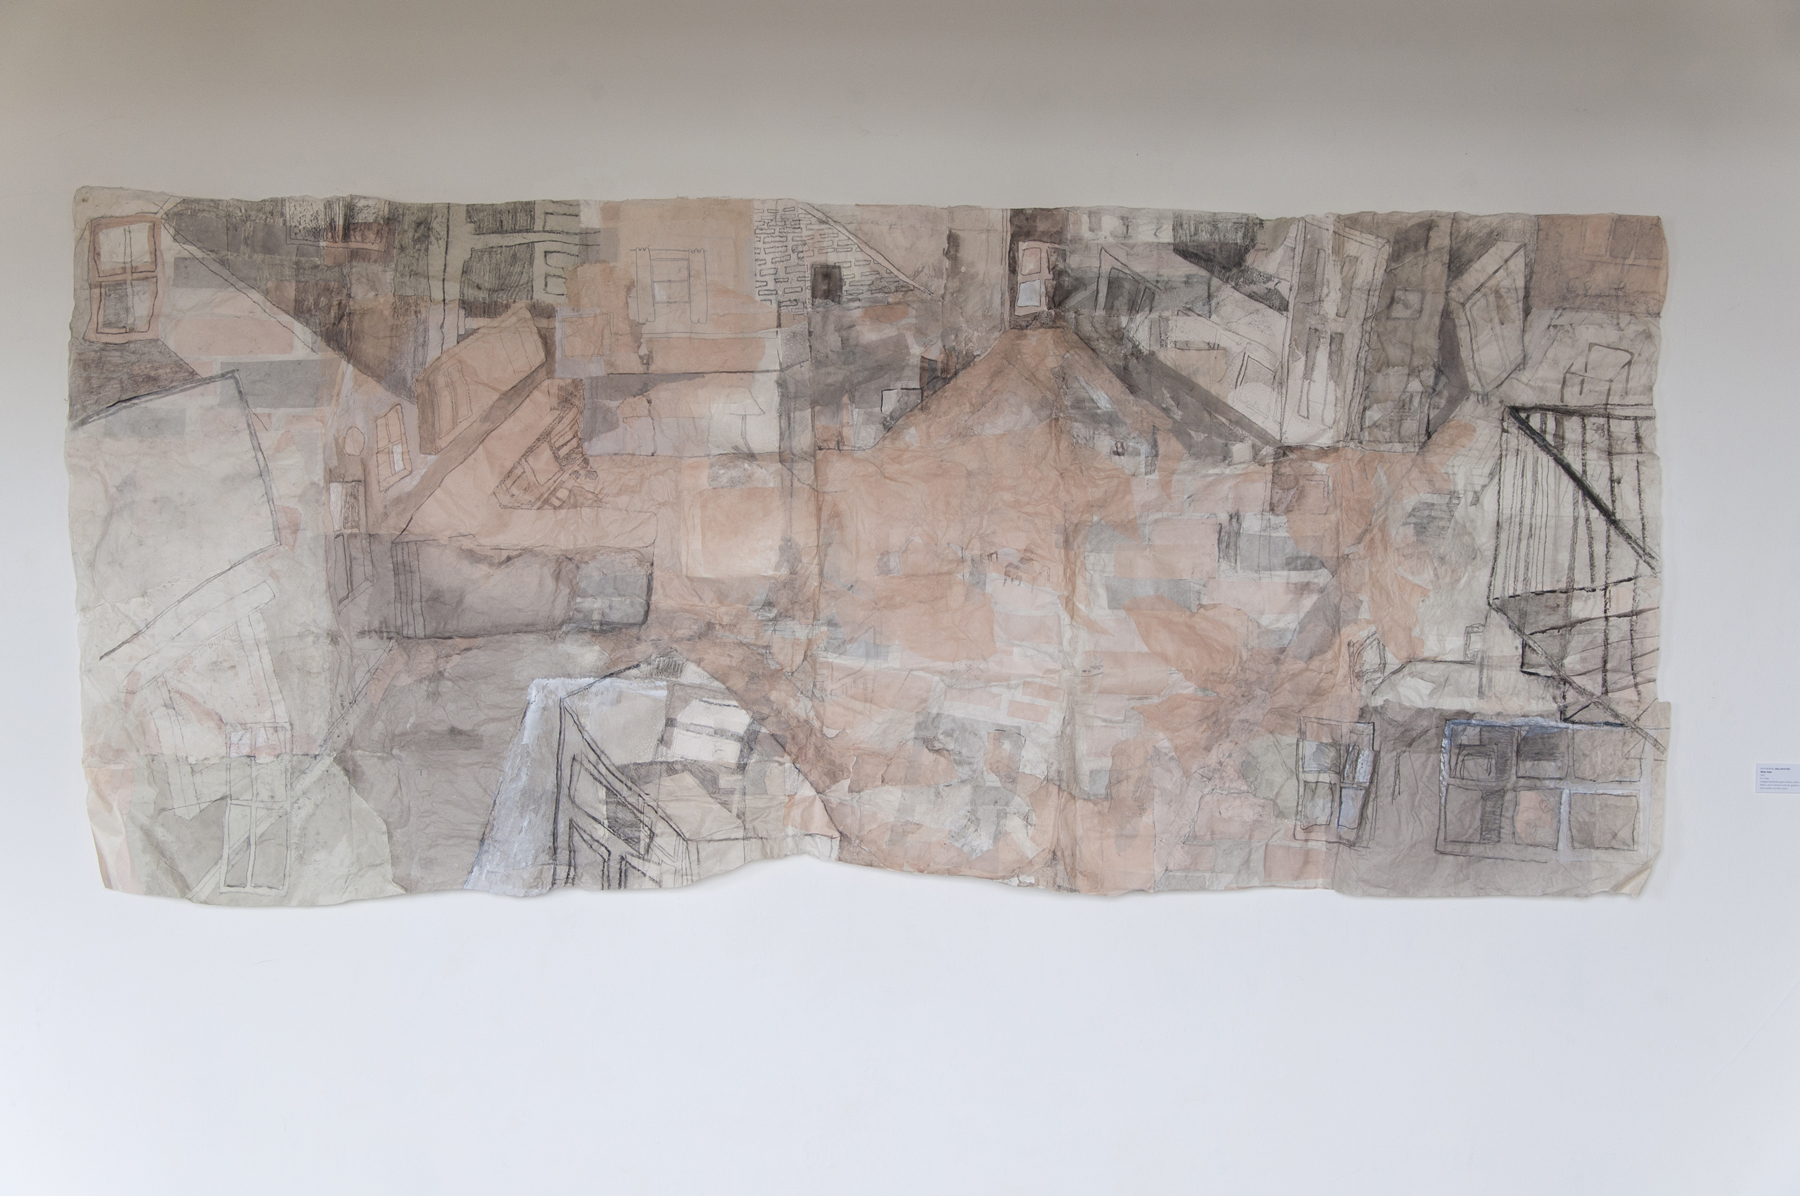 Katherine DeLamater White Table 2015 9 x 4 feet Collaged handmade papers (abaca, cotton rag from father's shirts, bamboo) with ink, graphite, charcoal, china marker, and litho crayon